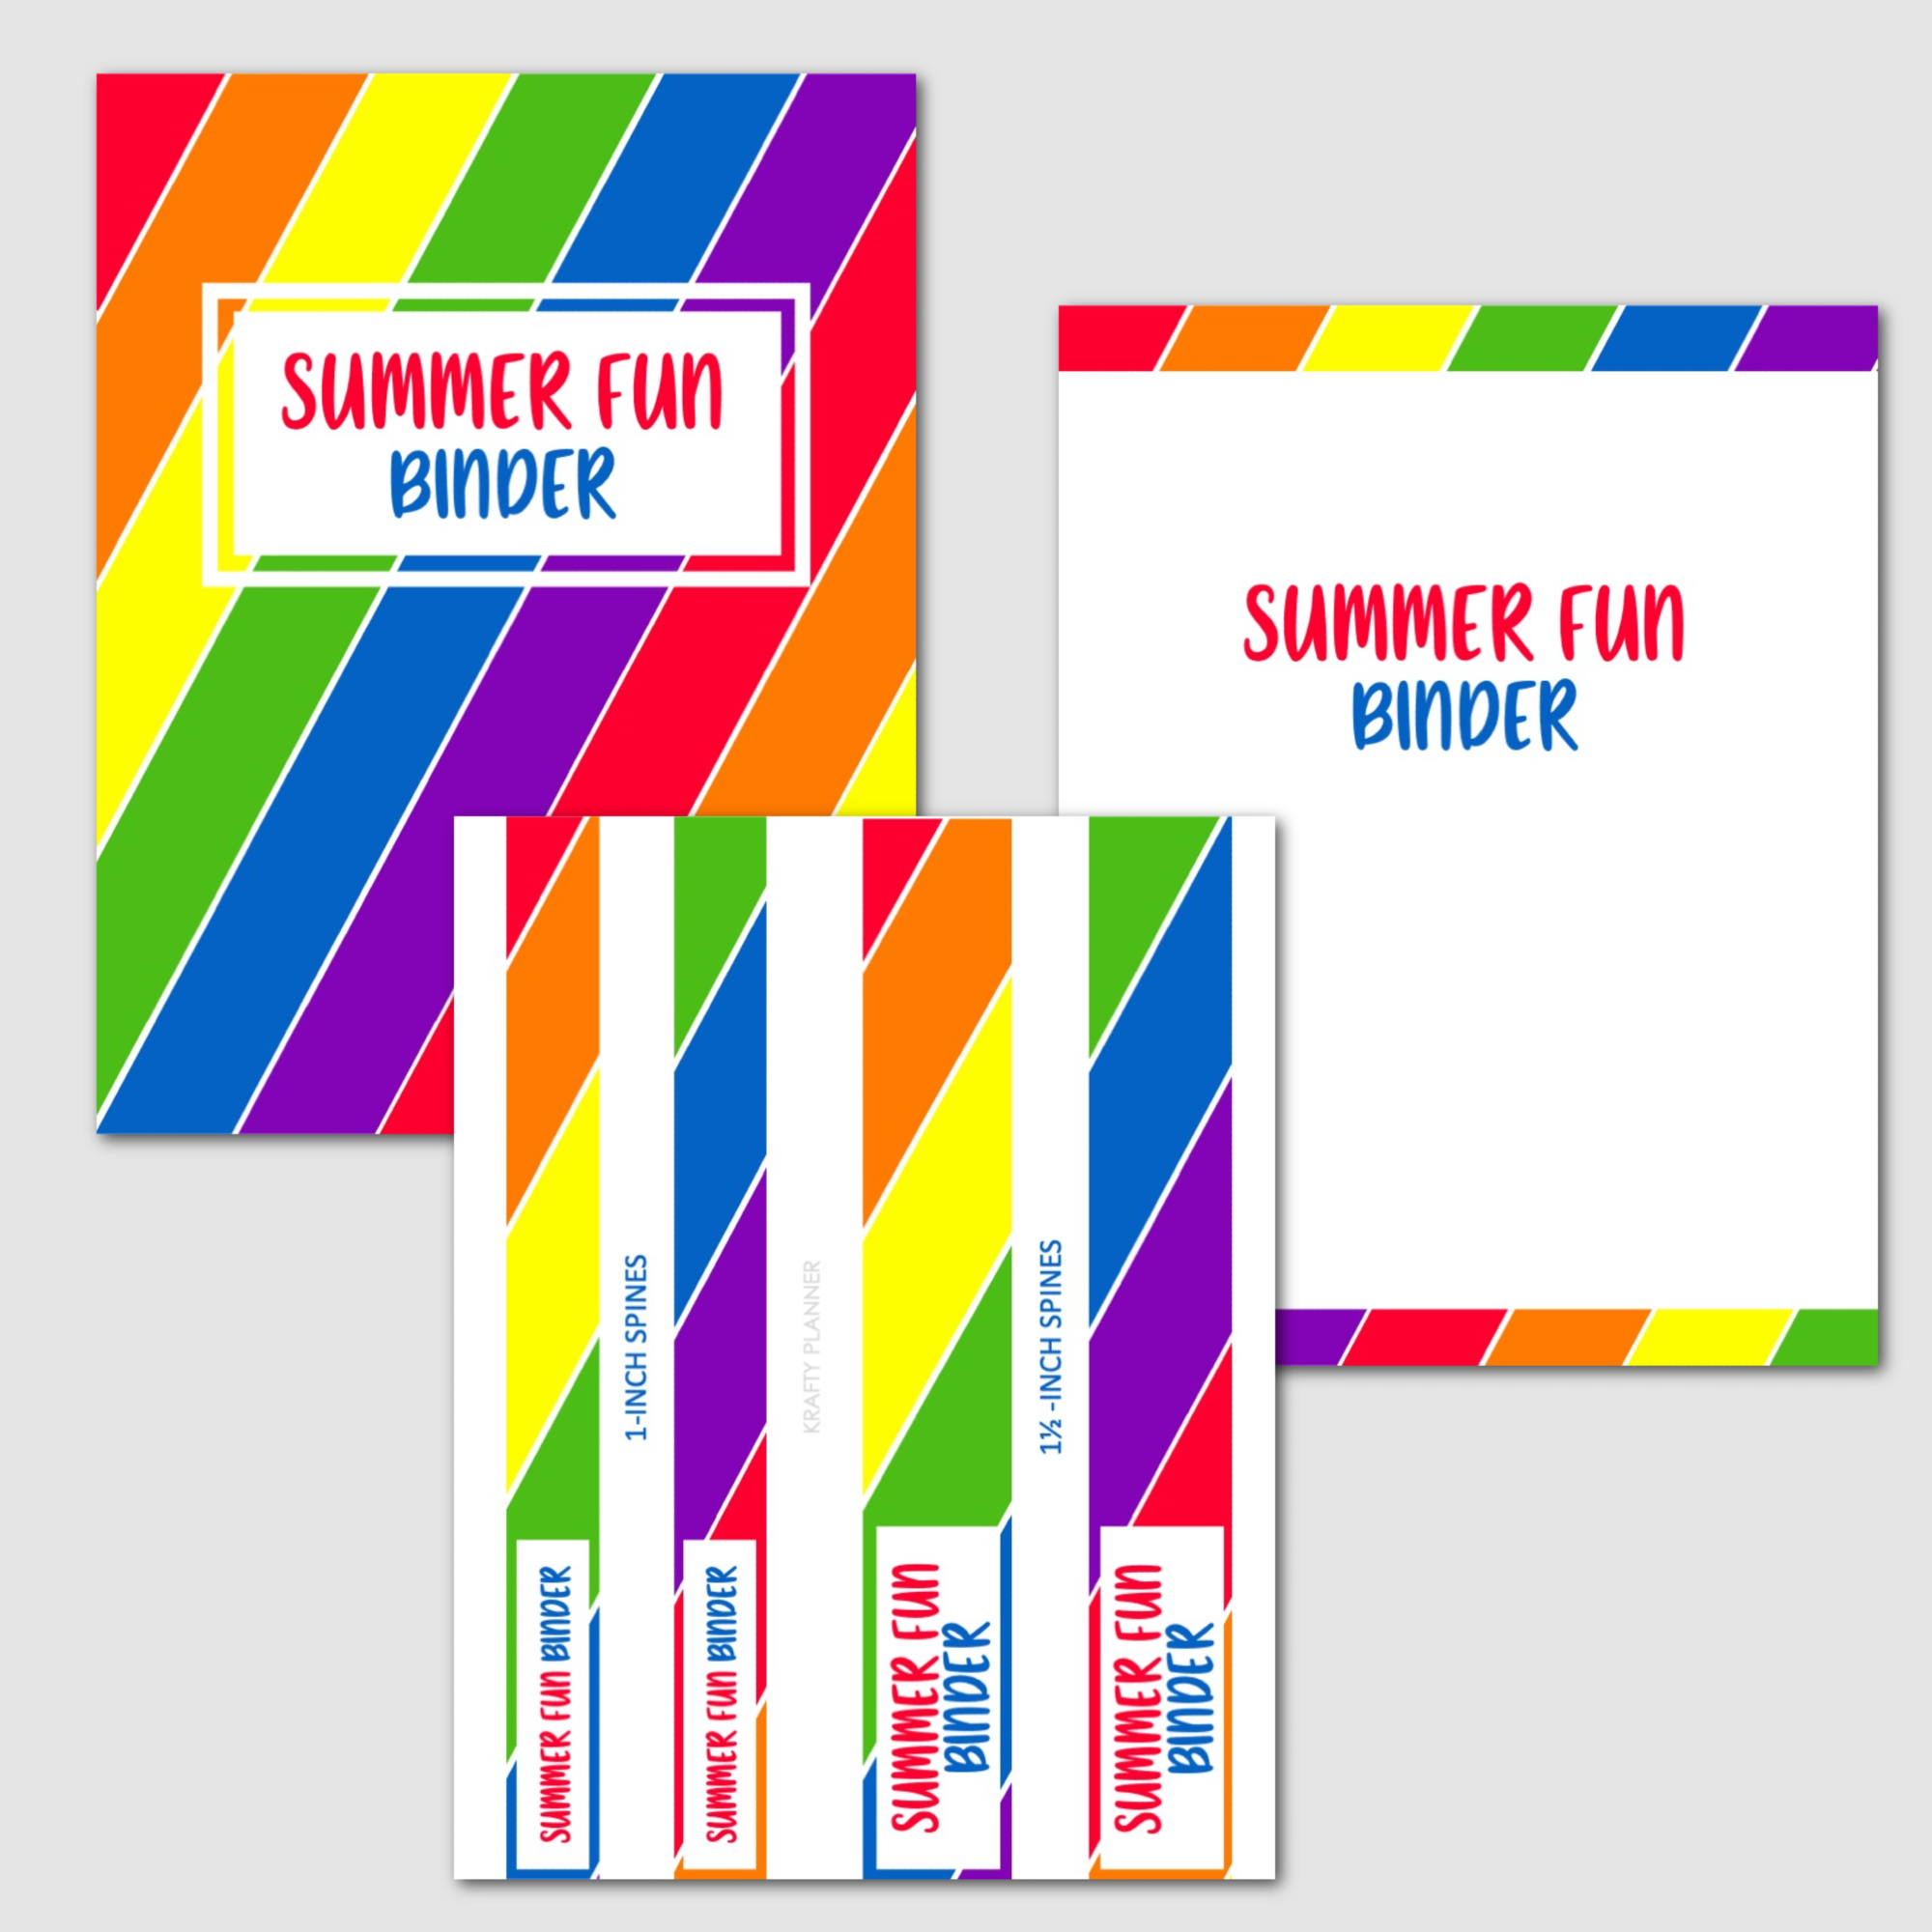 SUMMER FUN BINDER - Covers and spines